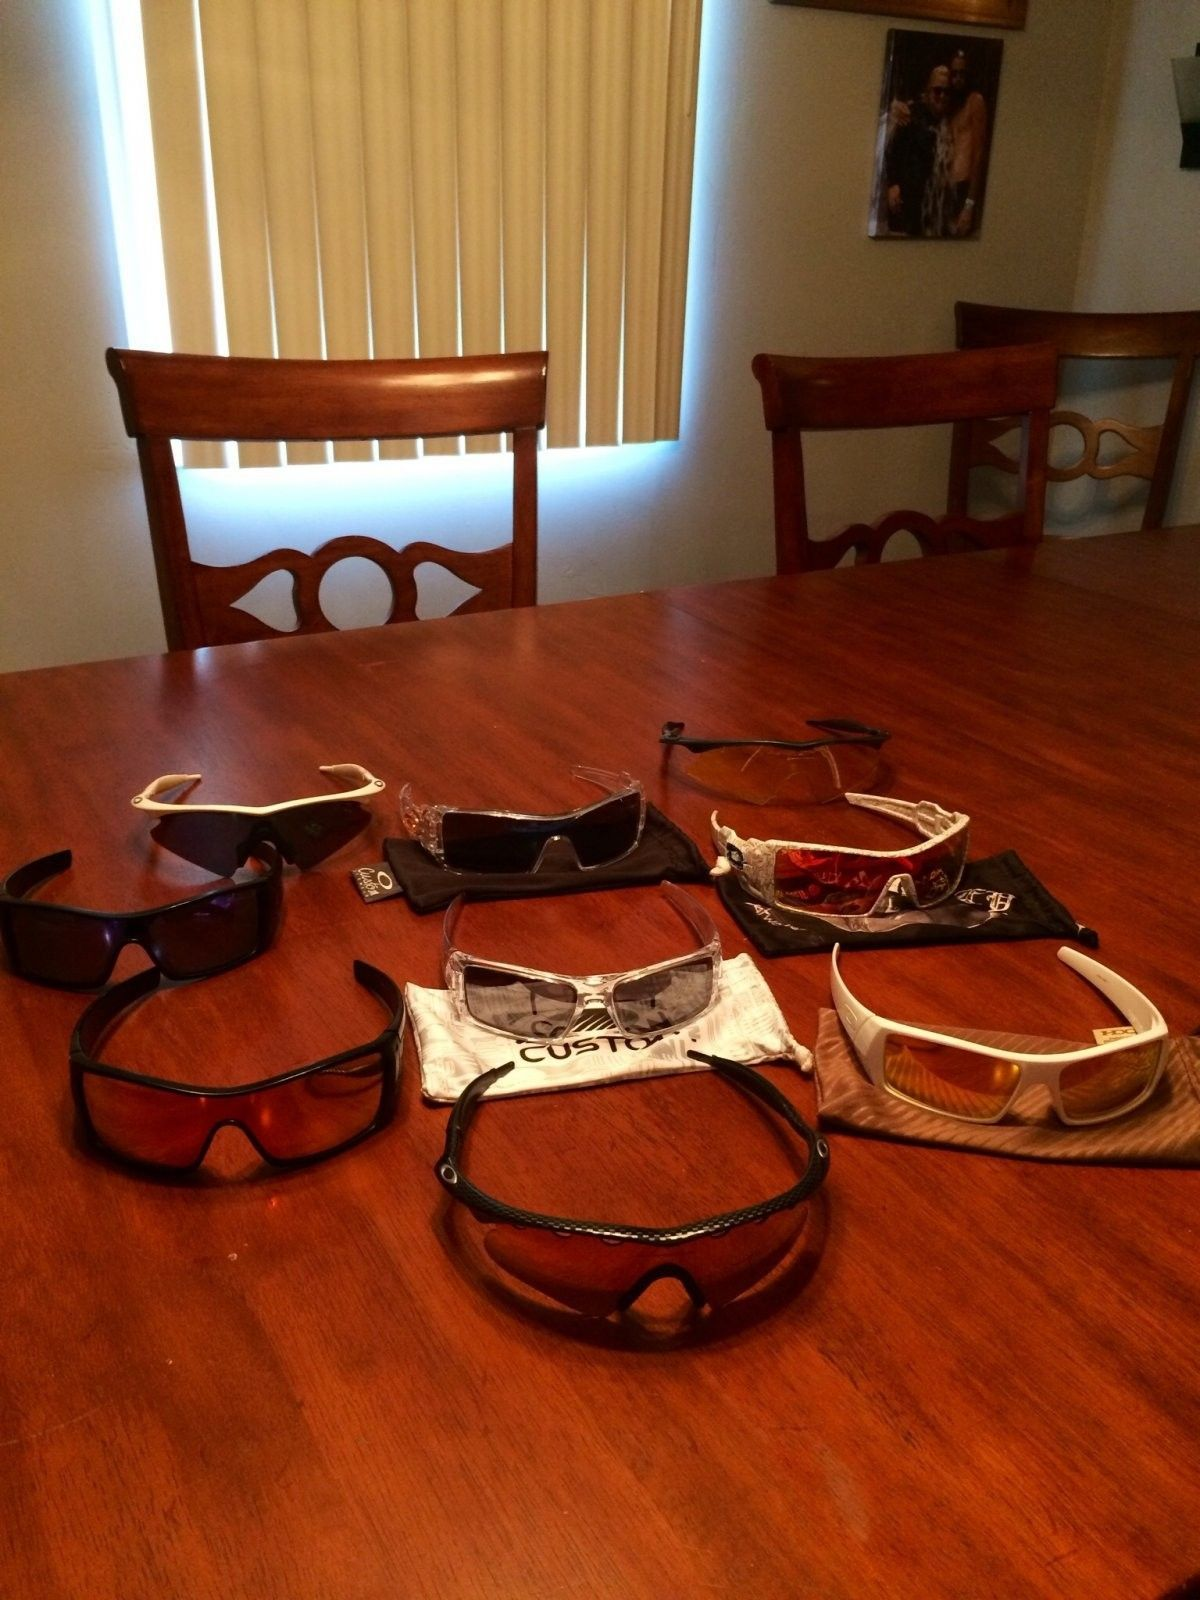 Some Of My Oakleys That I Have!! - image.jpg